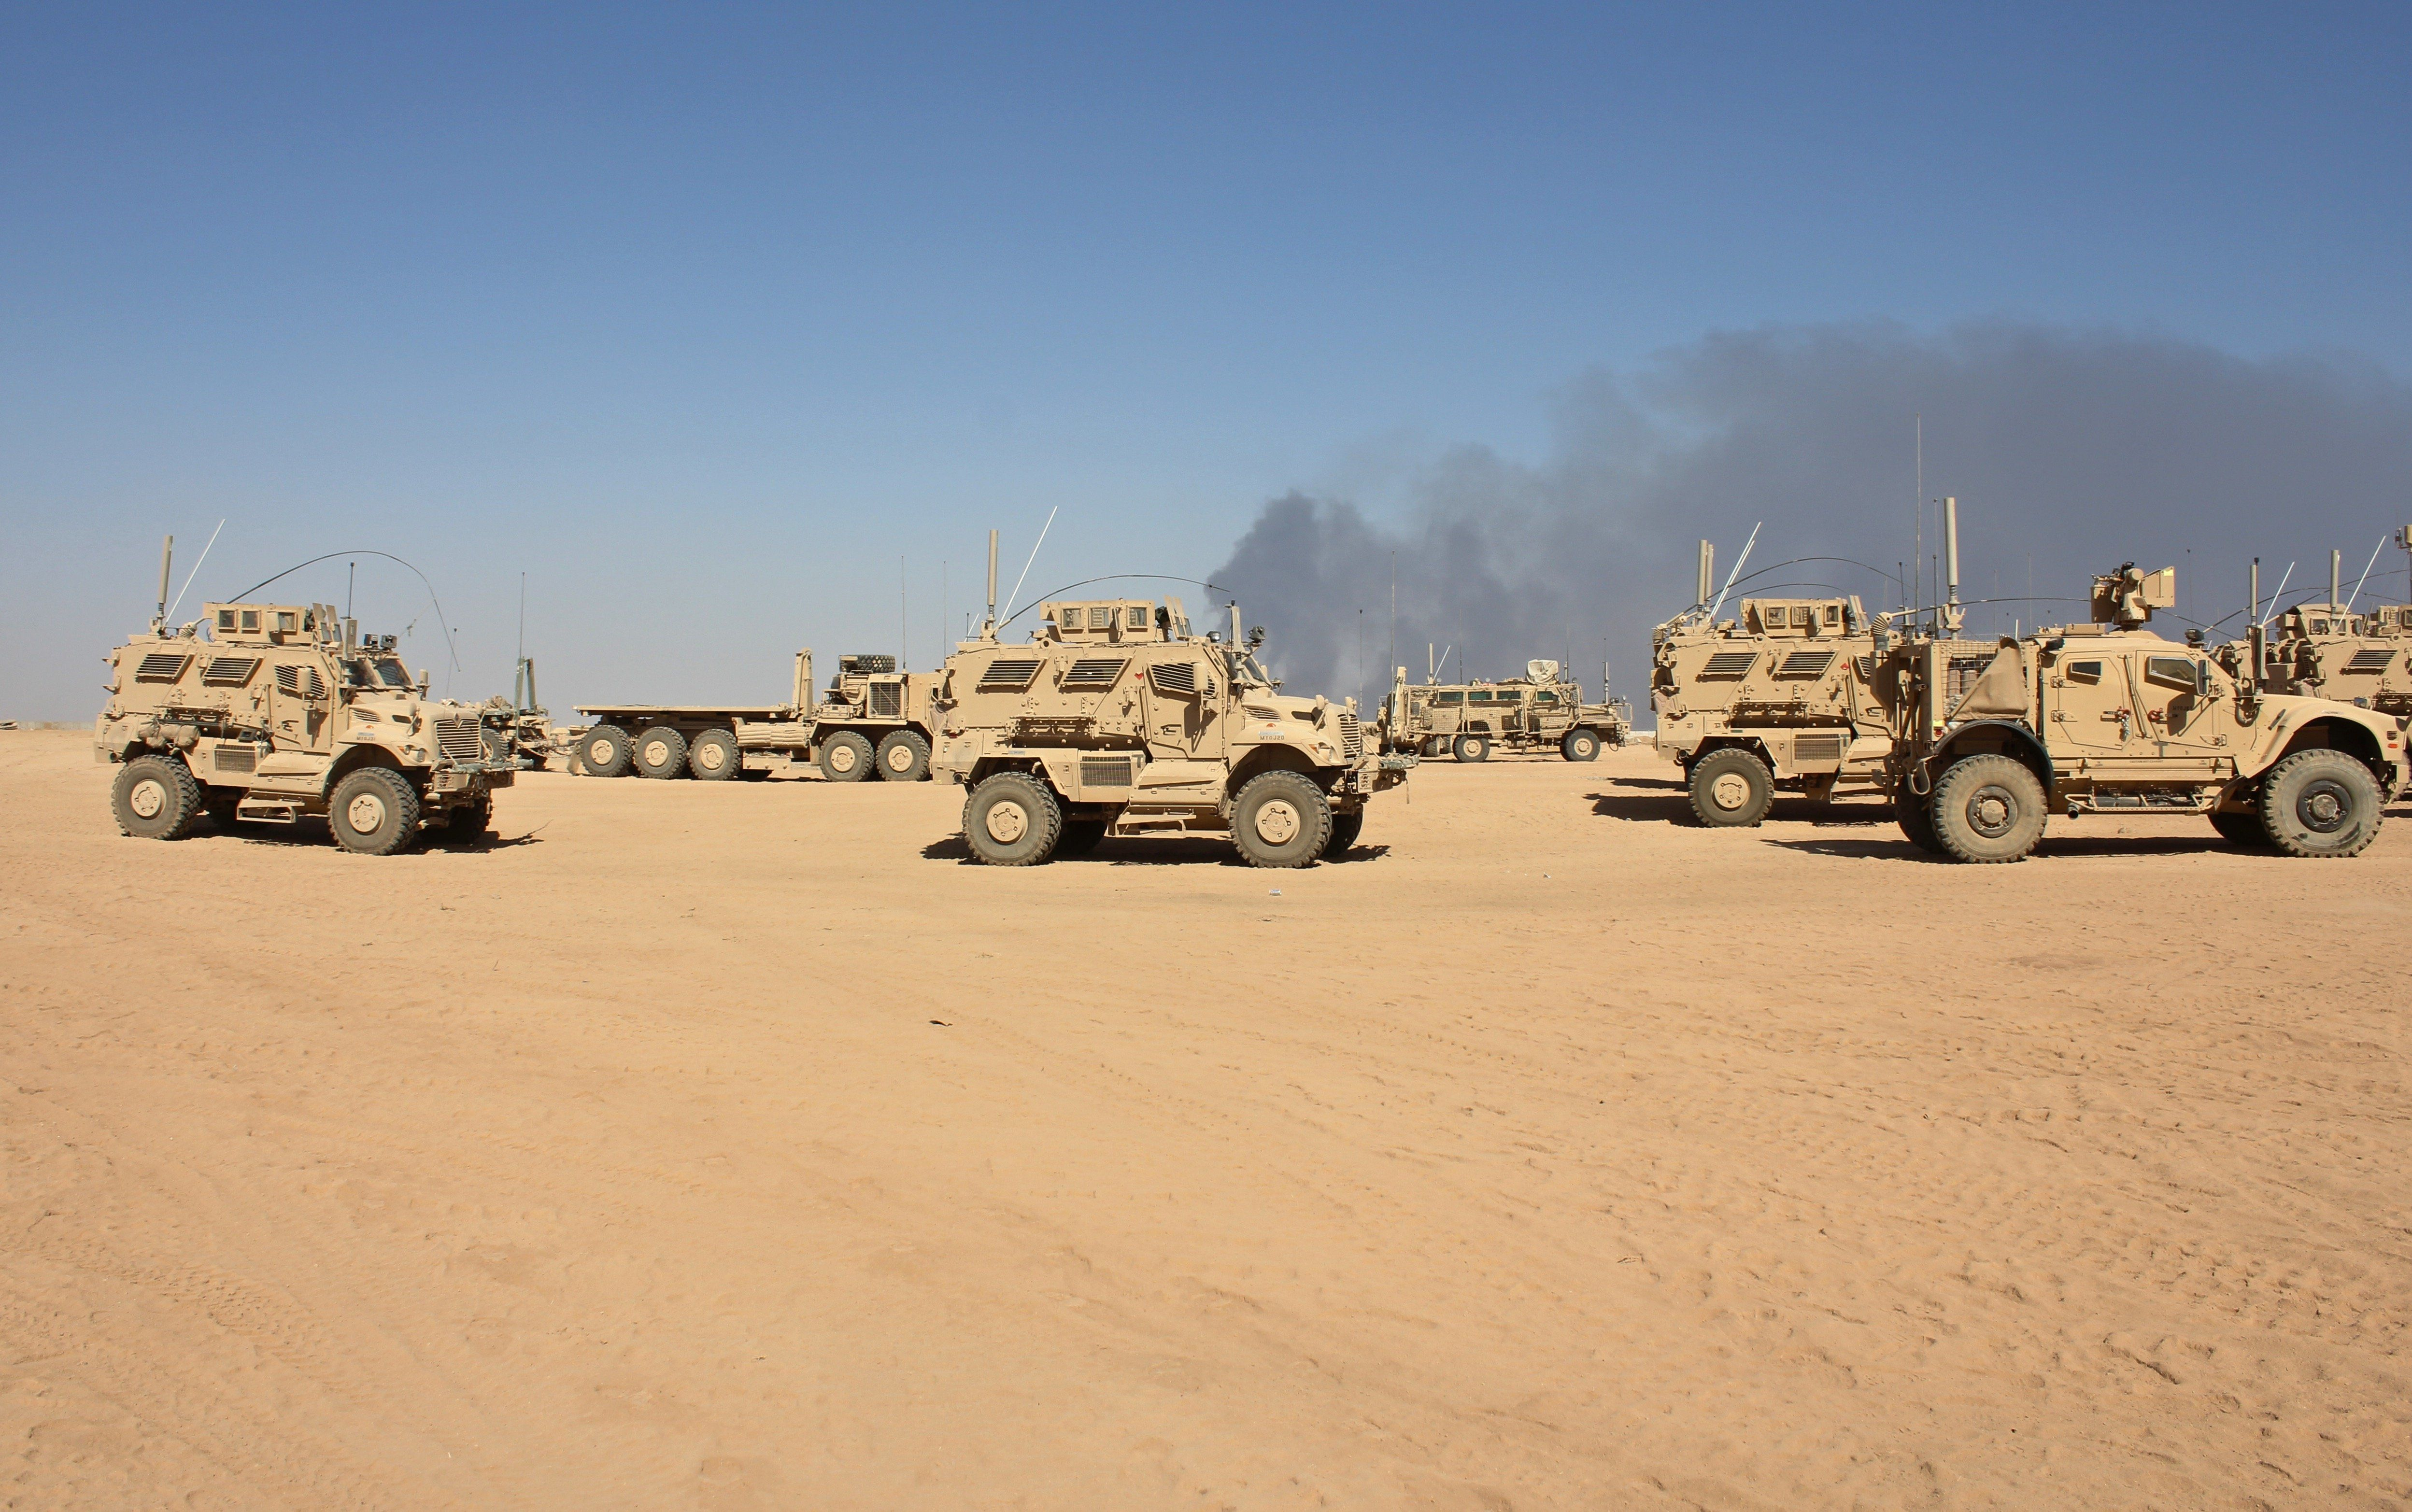 Mine-resistant vehicles basedat Qayyarah Airfield West, which will bea key staging area for...